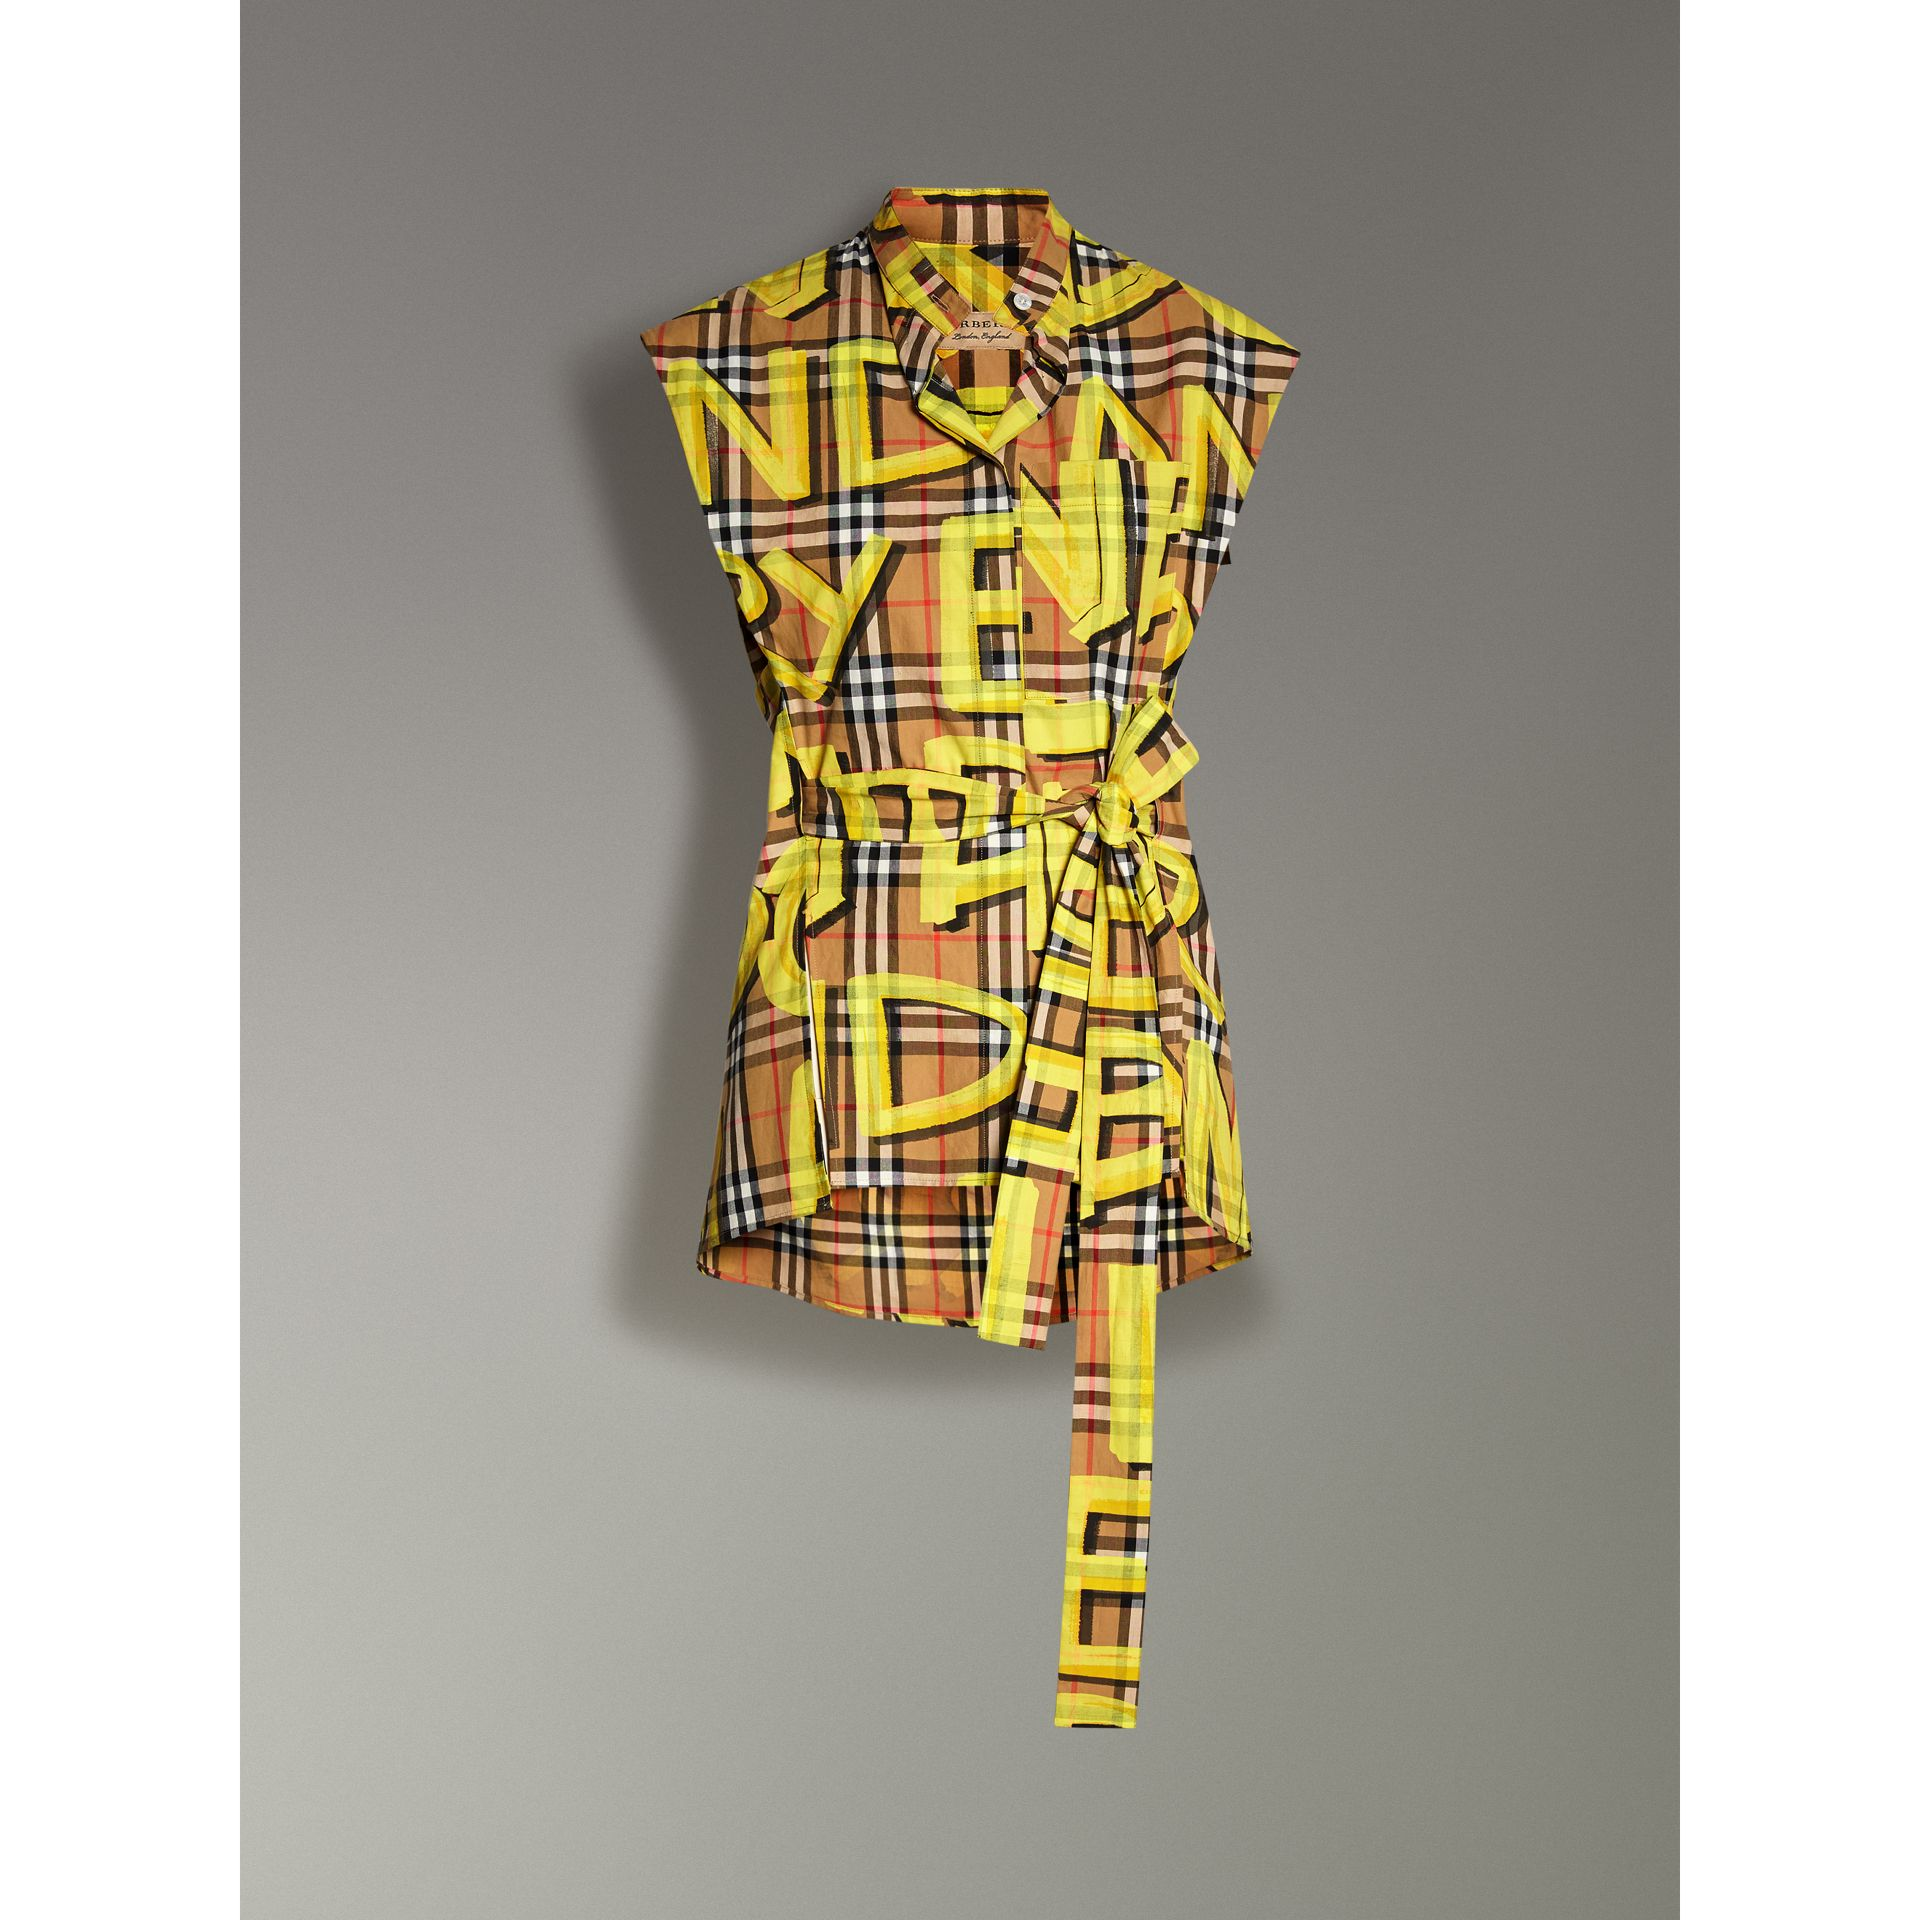 Sleeveless Graffiti Print Vintage Check Cotton Shirt in Bright Yellow - Women | Burberry - gallery image 3